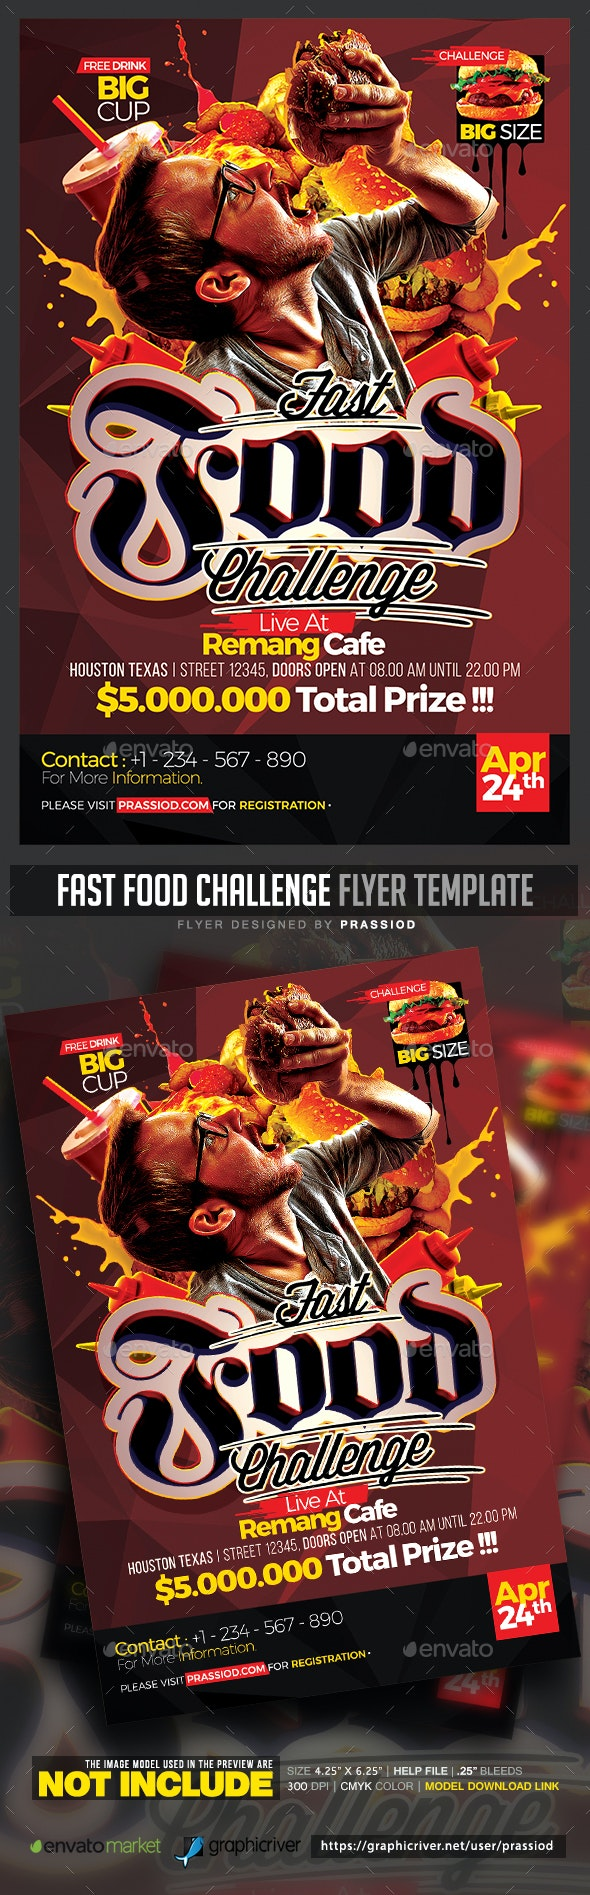 Fast Food Challenge Flyer Template - Events Flyers